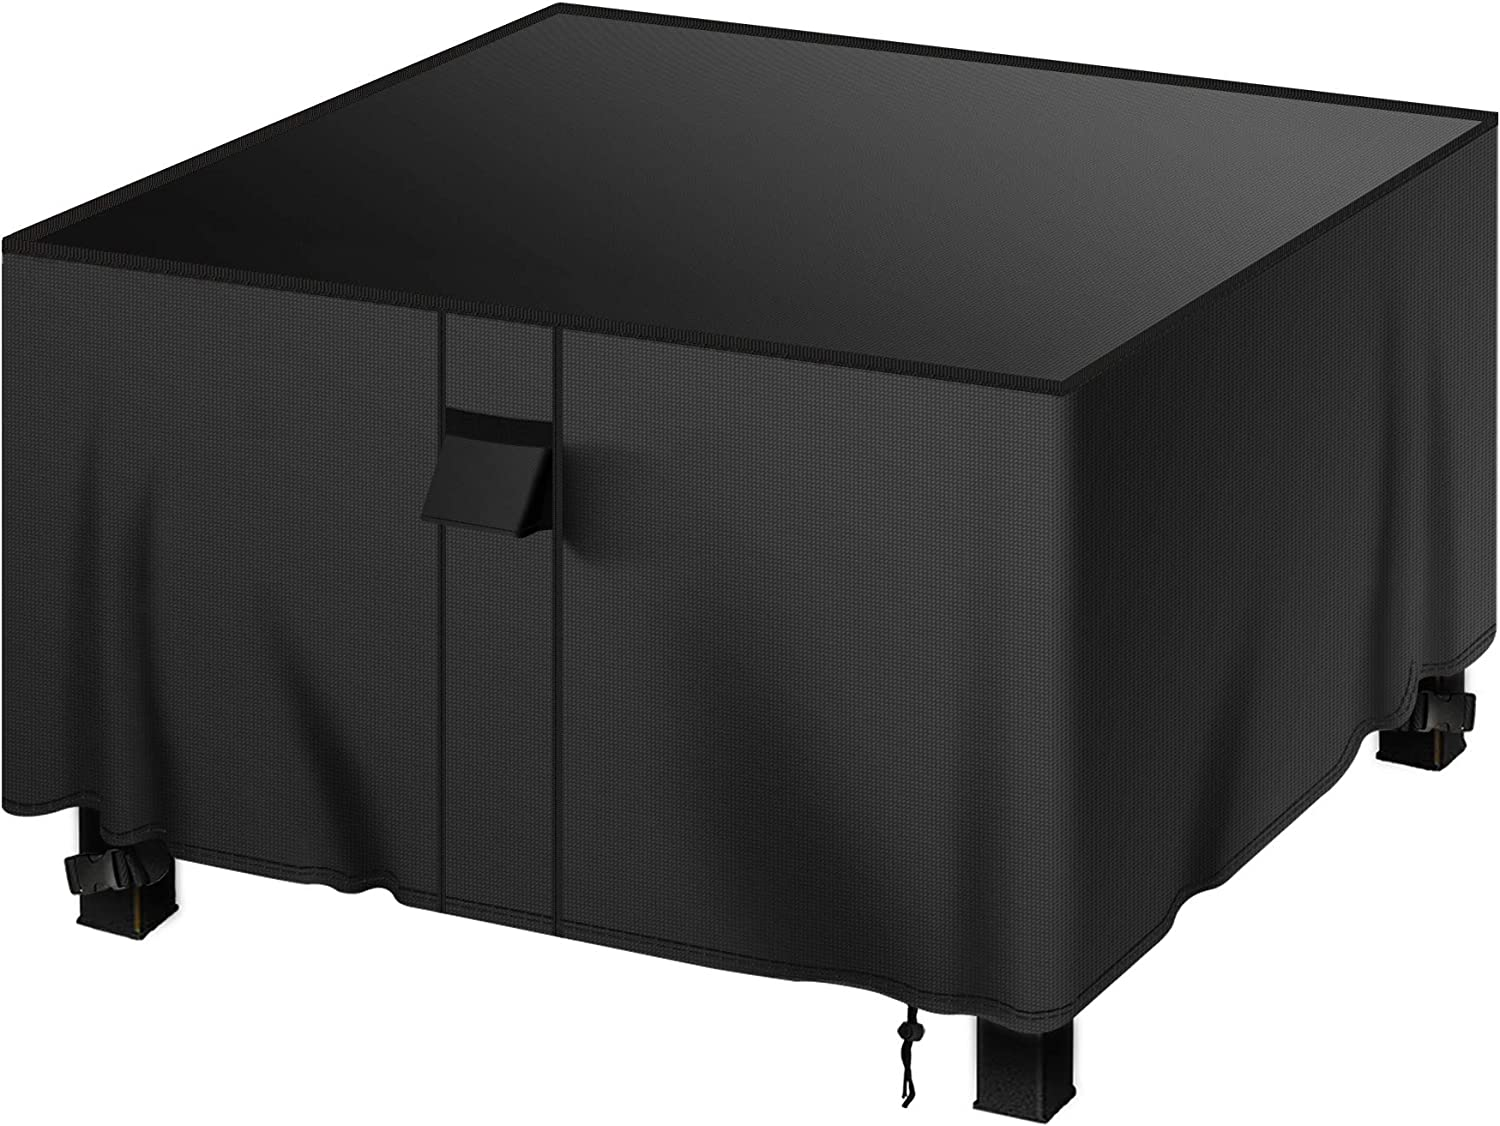 YDA Patio Square Regular store Fire Pit Cover Wa 50 New Free Shipping and Resistant inch Weather